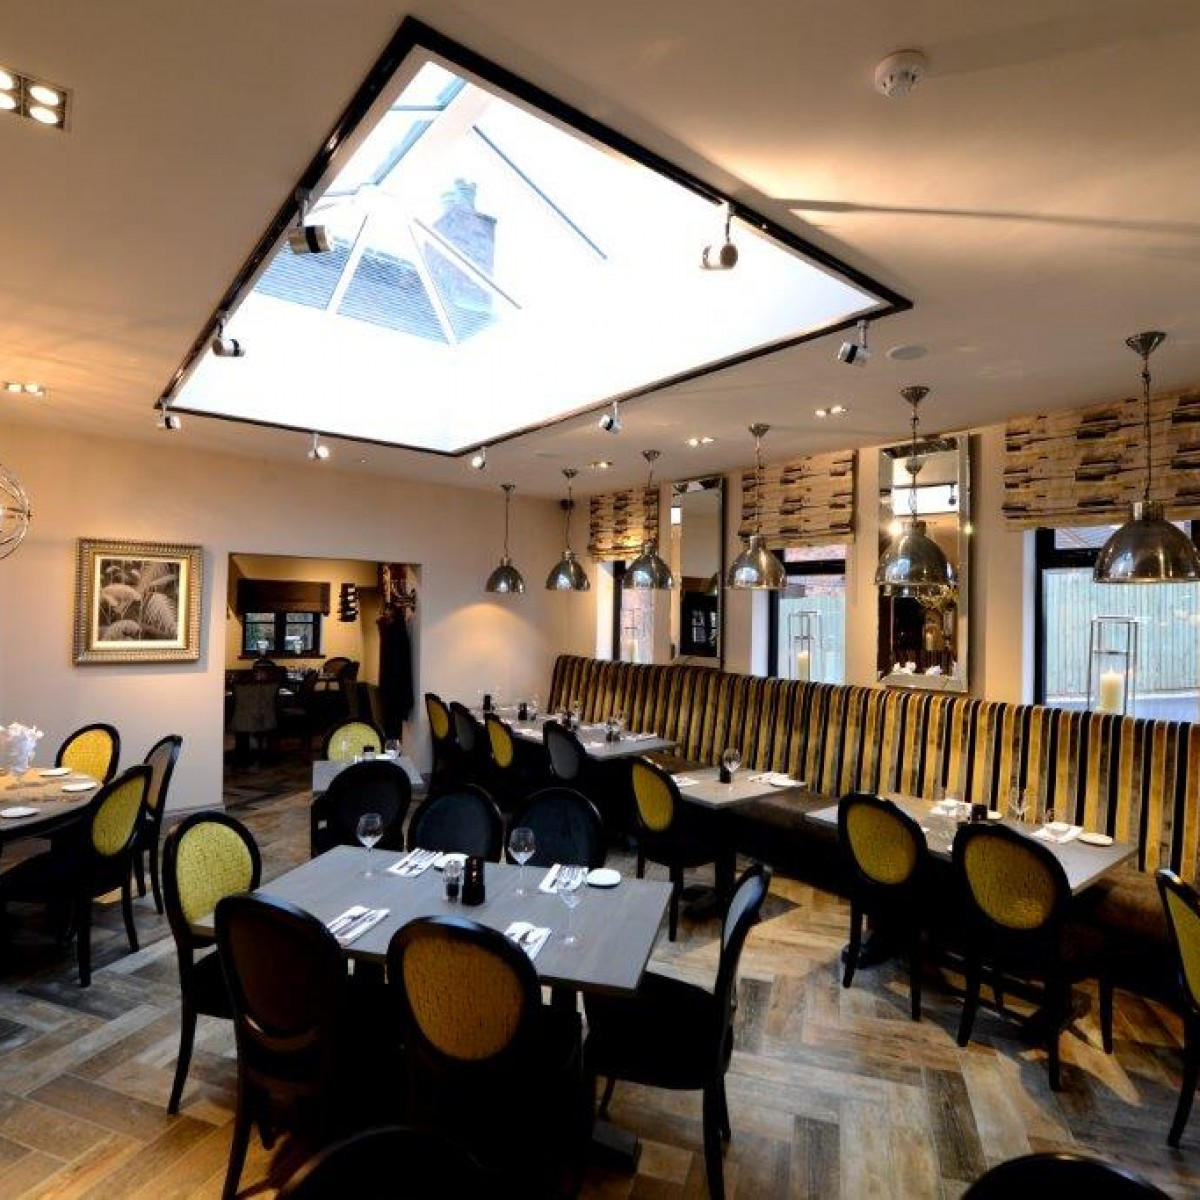 Restaurant Interior design downstairs eating area with bespoke furnishings